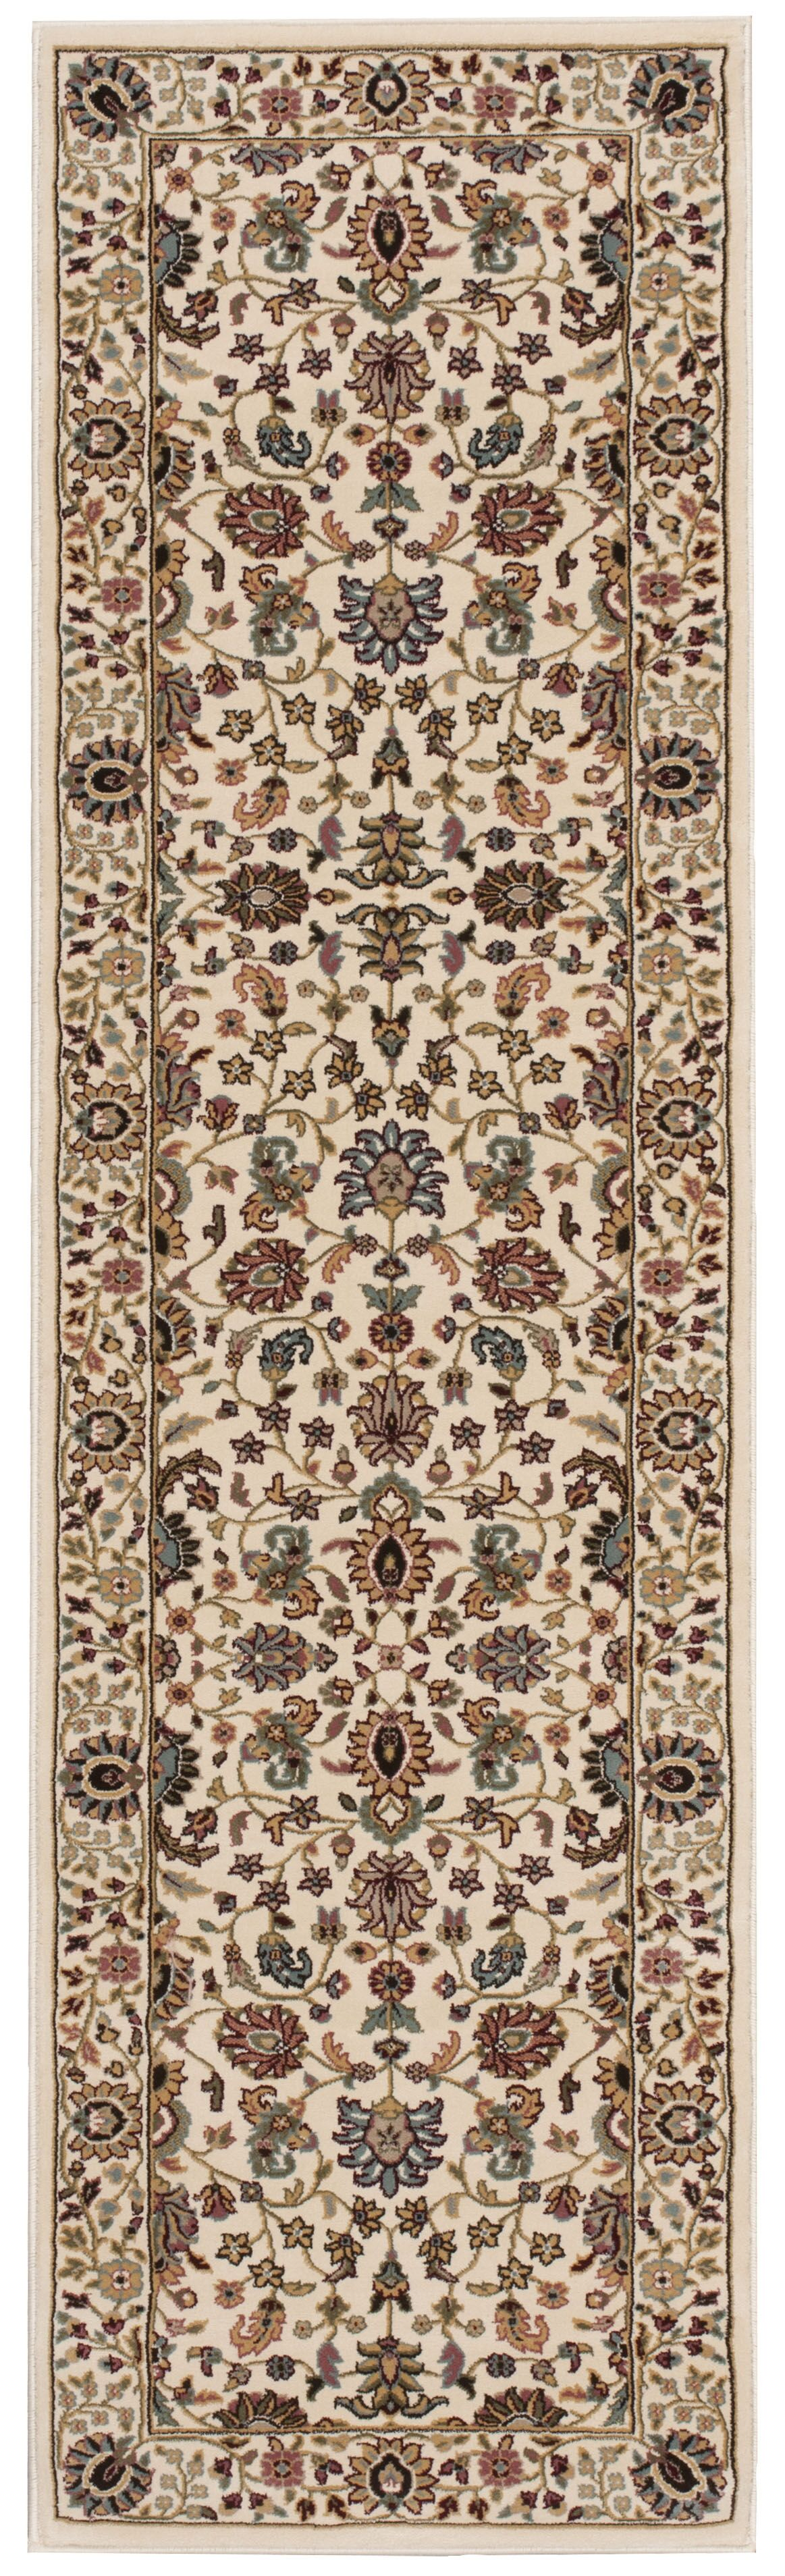 Antiquities Royal Countryside Ivory Area Rug Rug Size: Runner 2'2